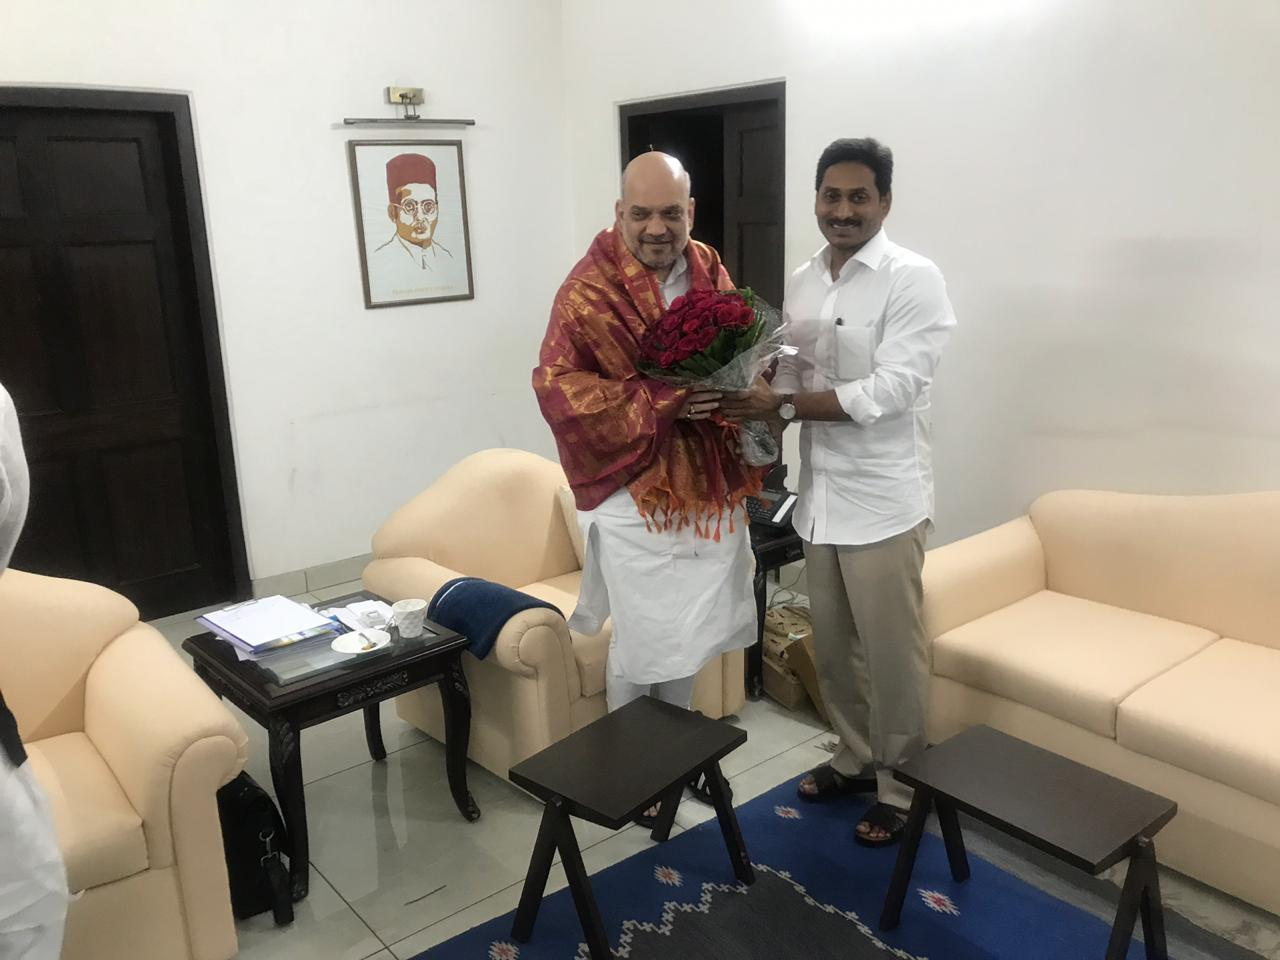 jagan met amit shah in his home